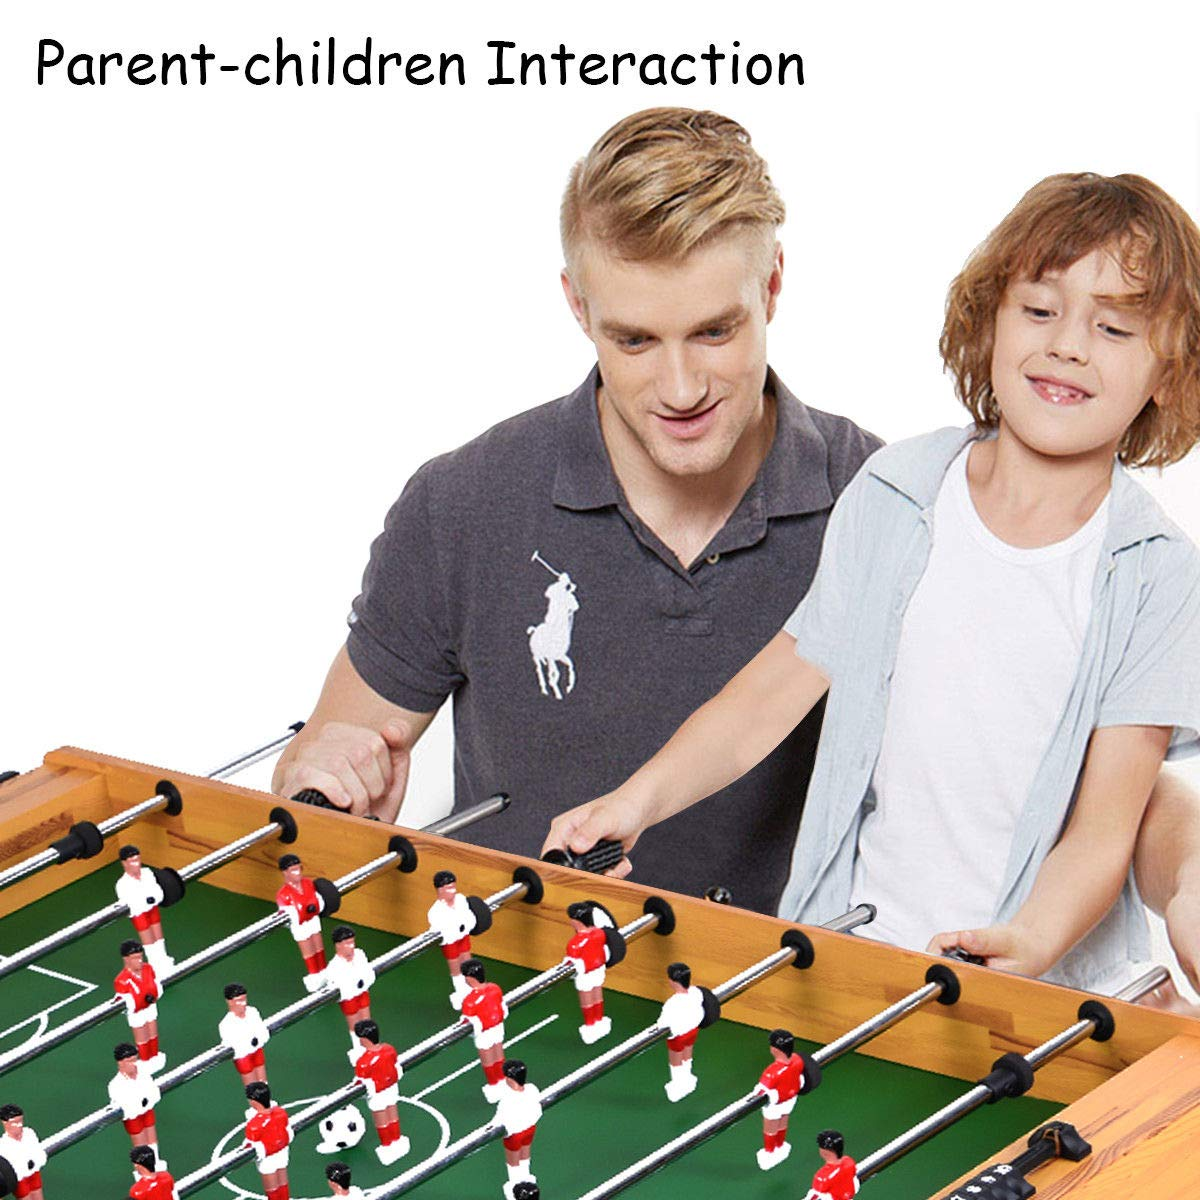 Giantex Foosball Soccer Table 48'' Competition Sized Arcade Game Room Hockey Family Sport by Giantex (Image #3)